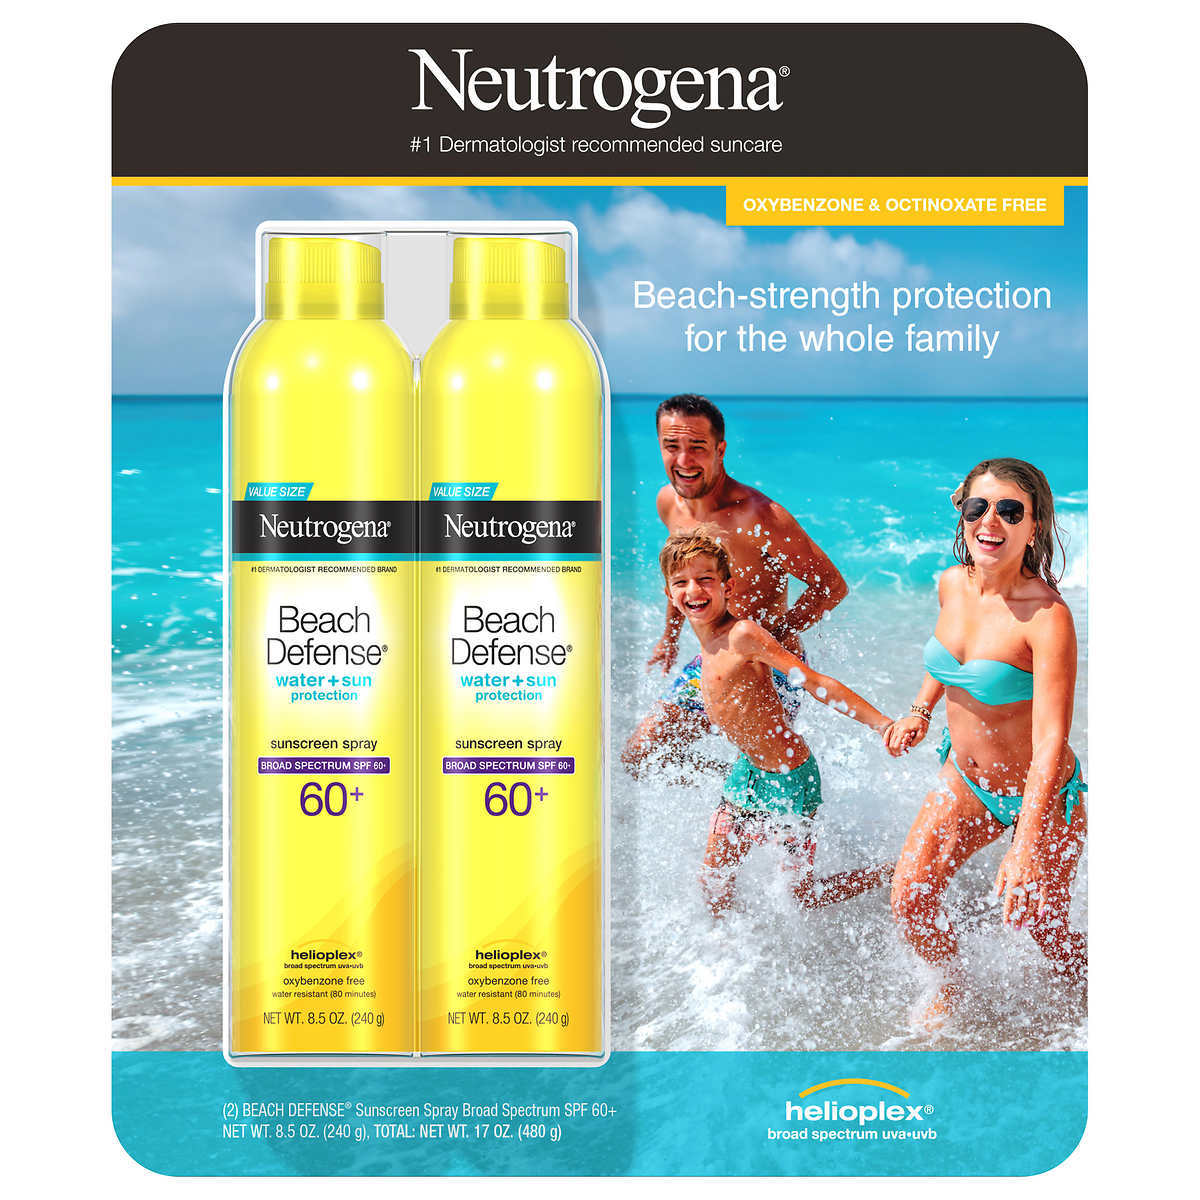 Primary image for Neutrogena Beach Defense Sunscreen Spray SPF 60+, 2-pack Water & Sun Protection.